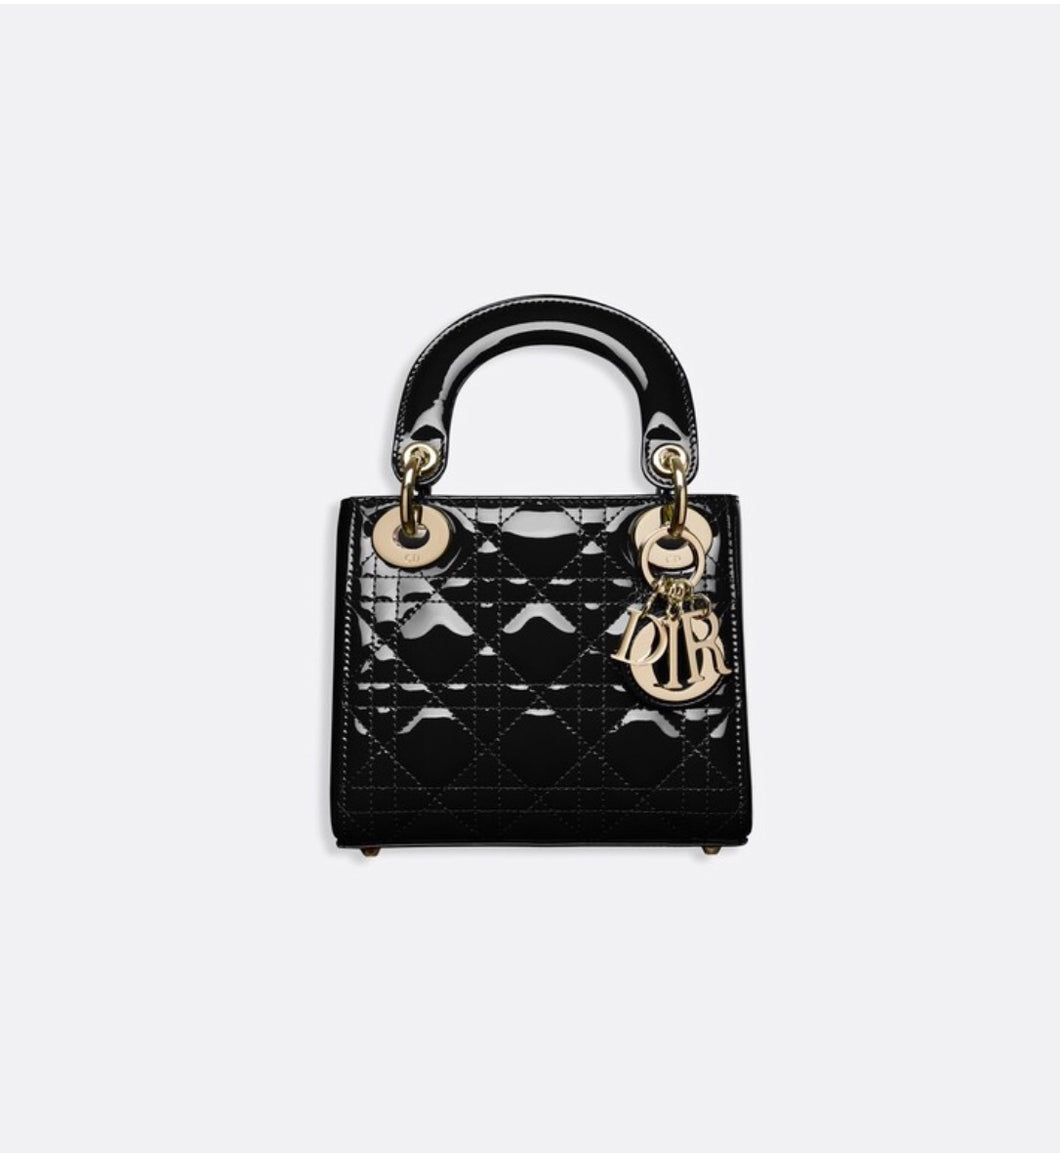 DIOR MINI LADY CALFSKIN BAG